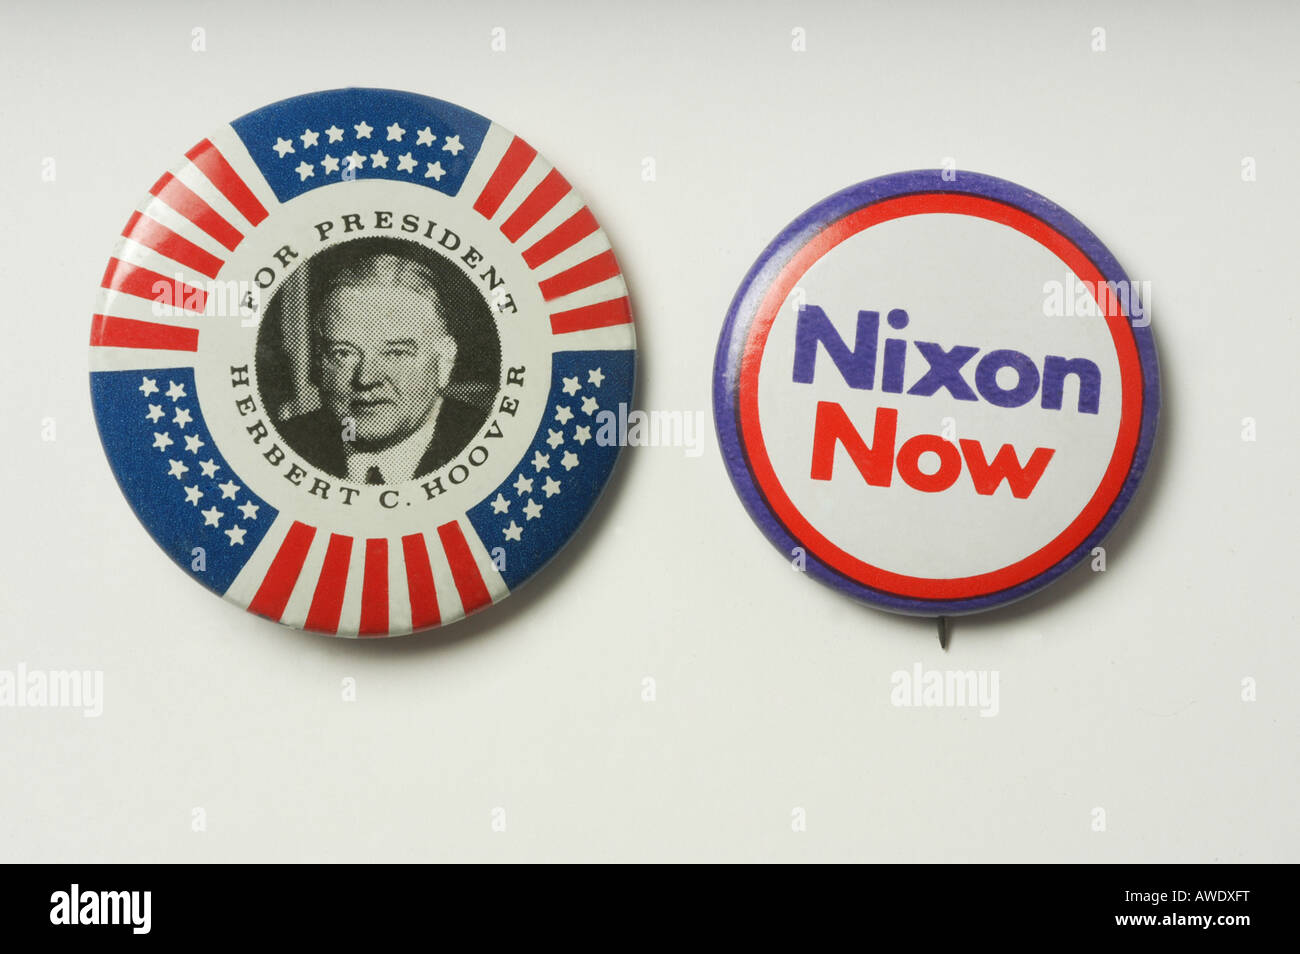 Presidential election buttons Nixon Hoover USA - Stock Image